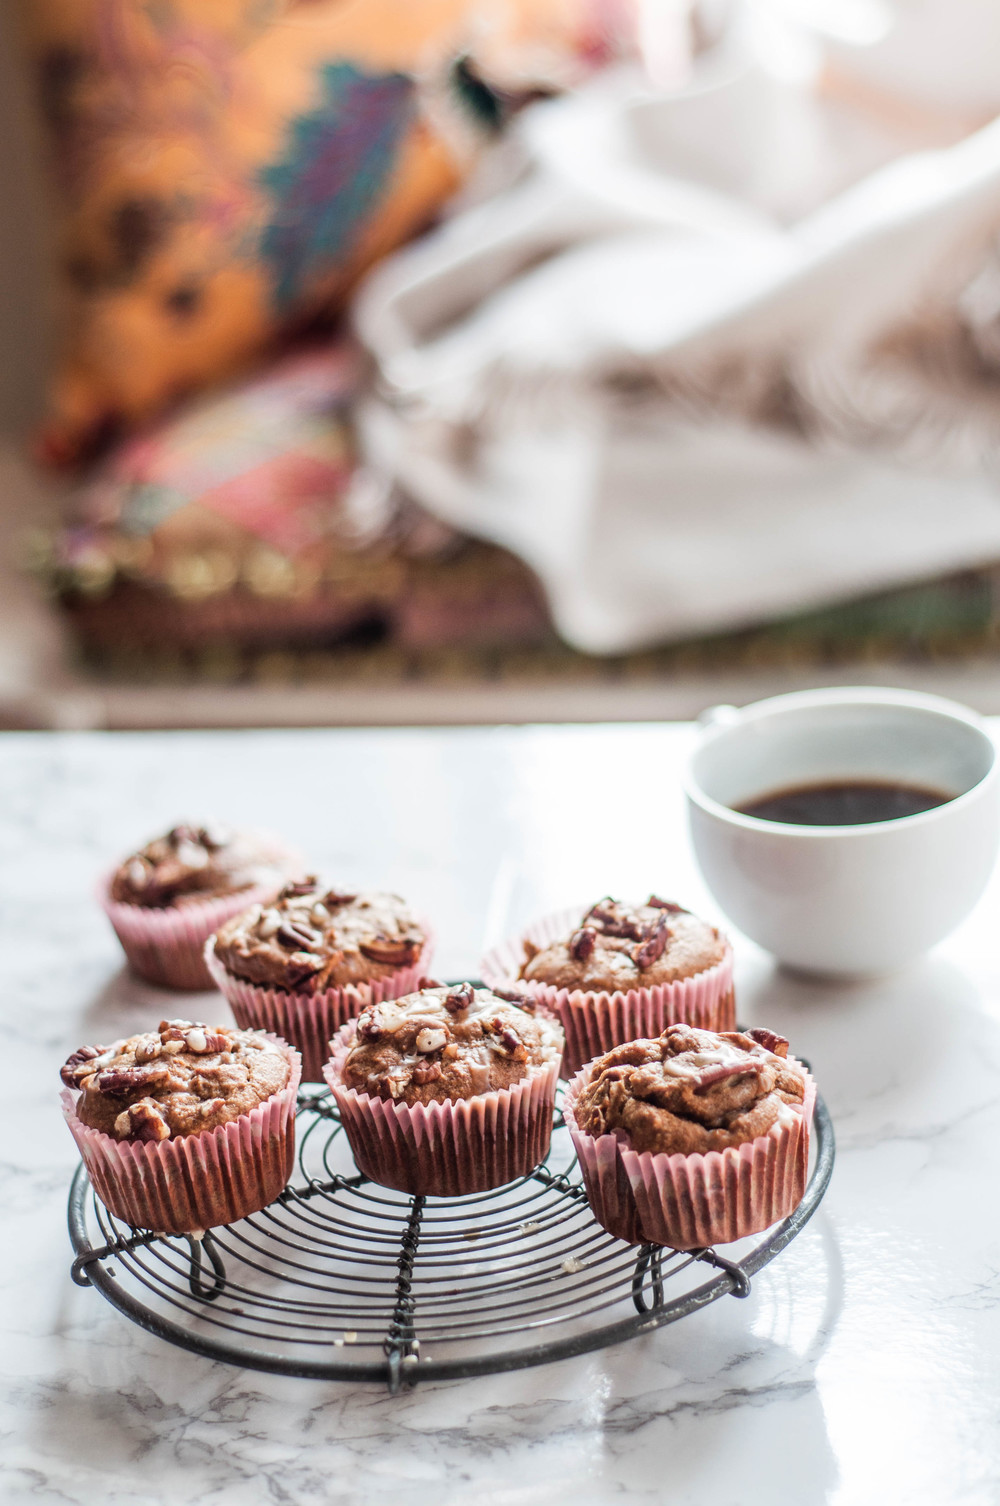 Oat, Almond and Banana Muffins to start your morning on the right note!